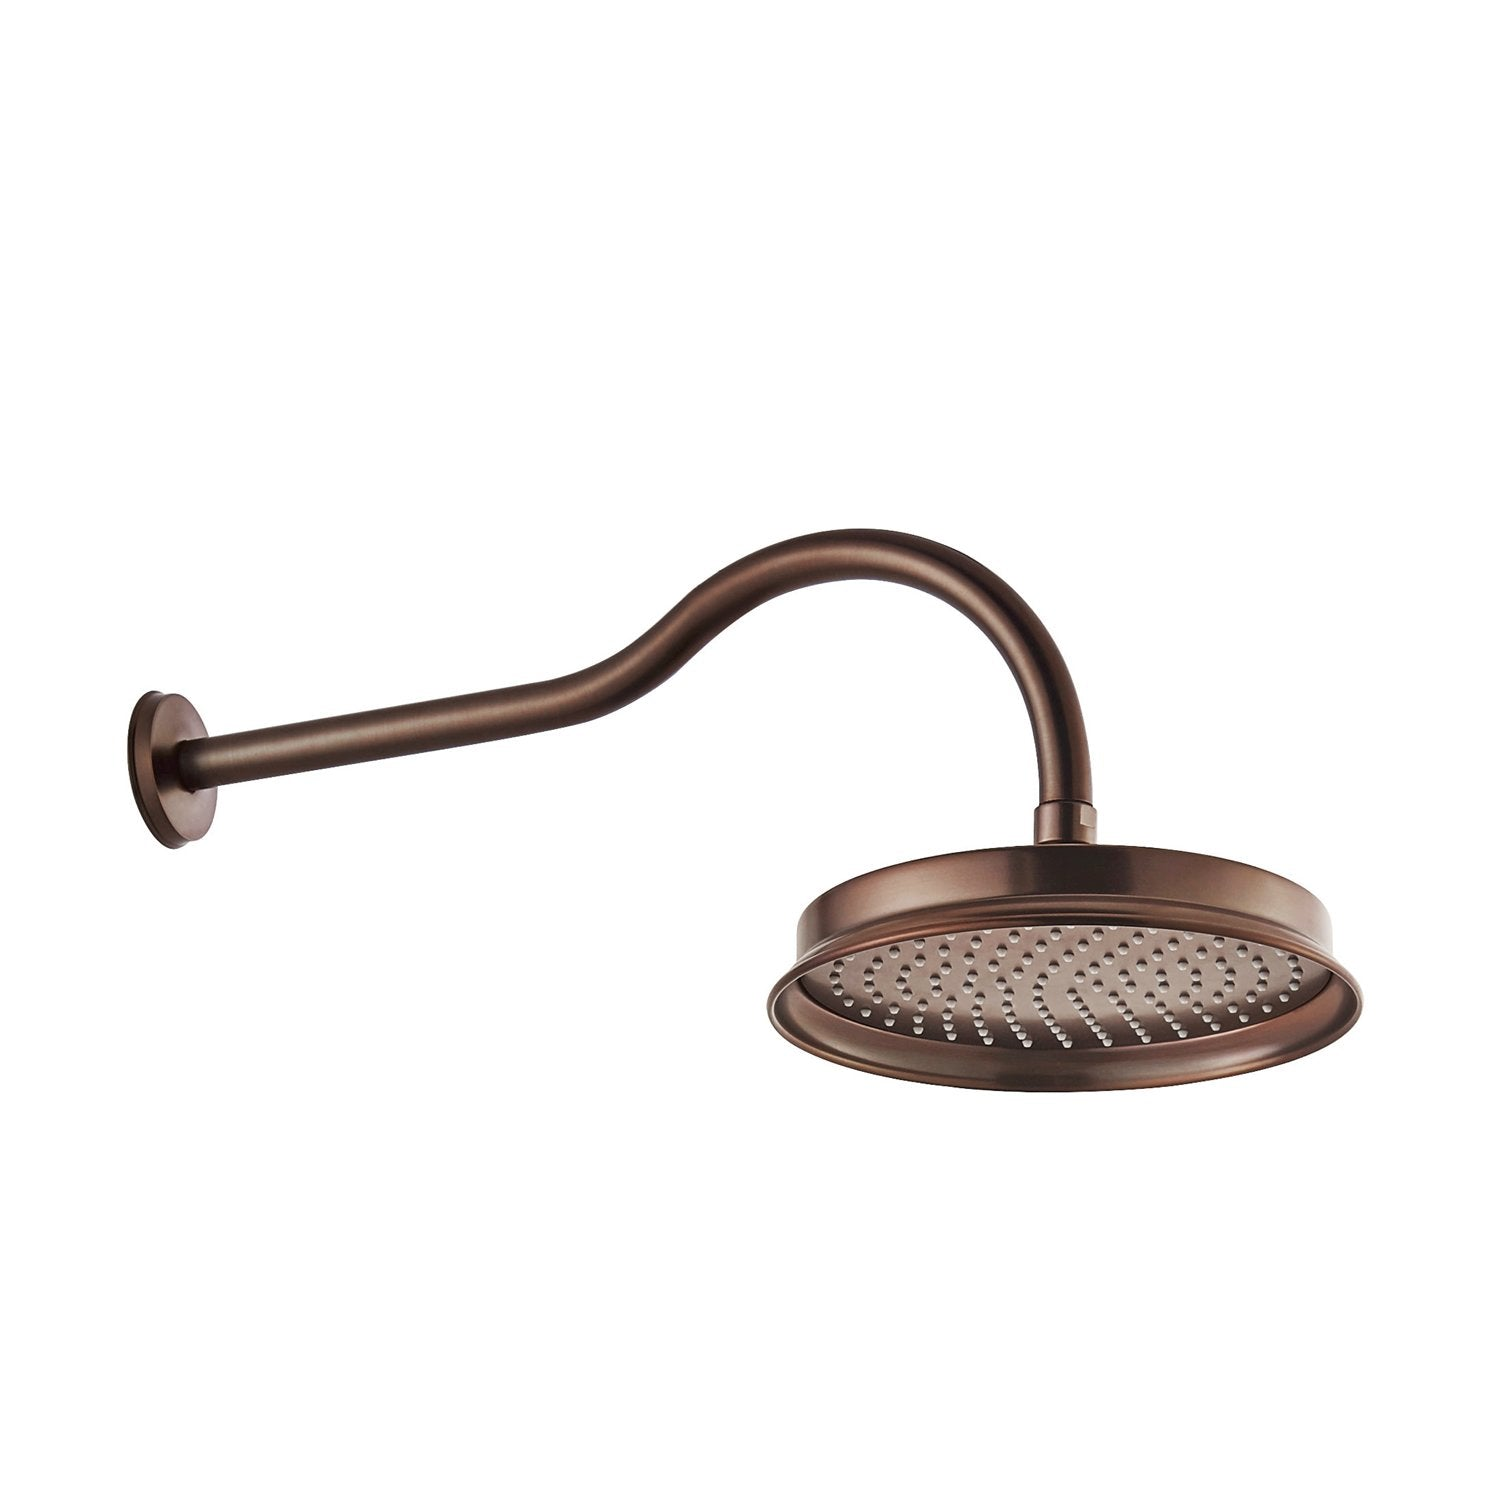 Dax Round Rain Shower Head Wall Mount Brass Body Oil Rubbed Bronze Finish Diameter 8 7 8 Inches Dax B15 Orb